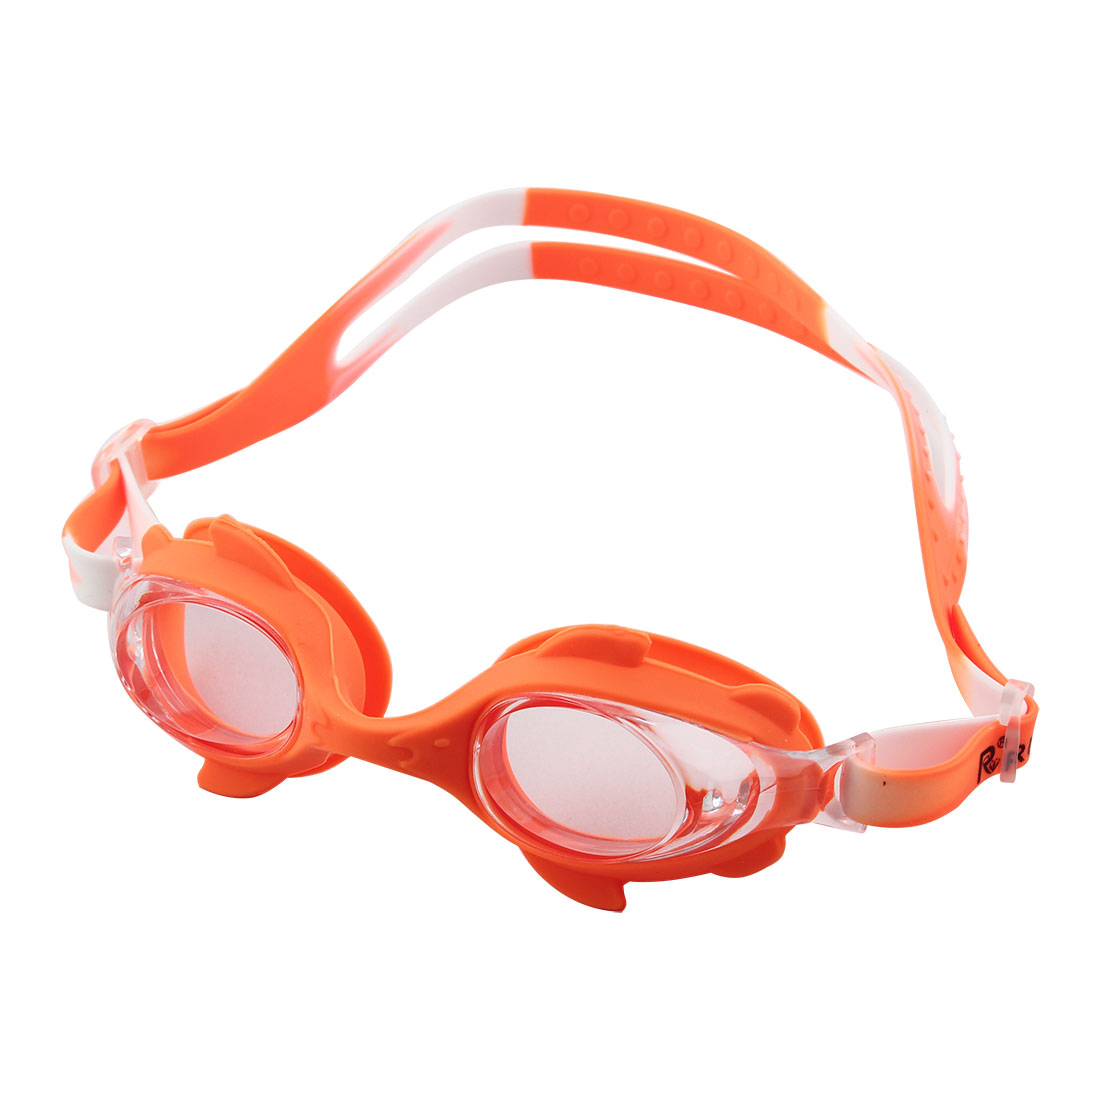 Clear Vision Anti Fog Adjustable Belt Swim Glasses Swimming Goggles Orange w Storage Case for Youth Children